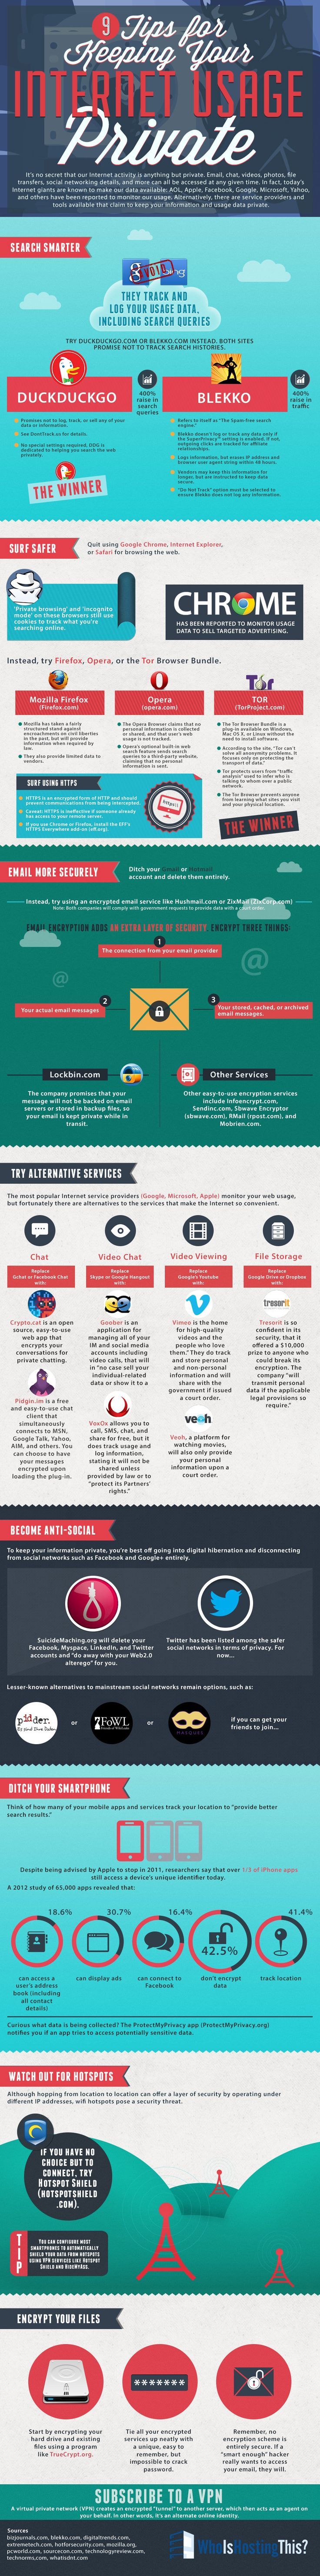 9 Tips For Keeping Your Internet Usage Private #infographic